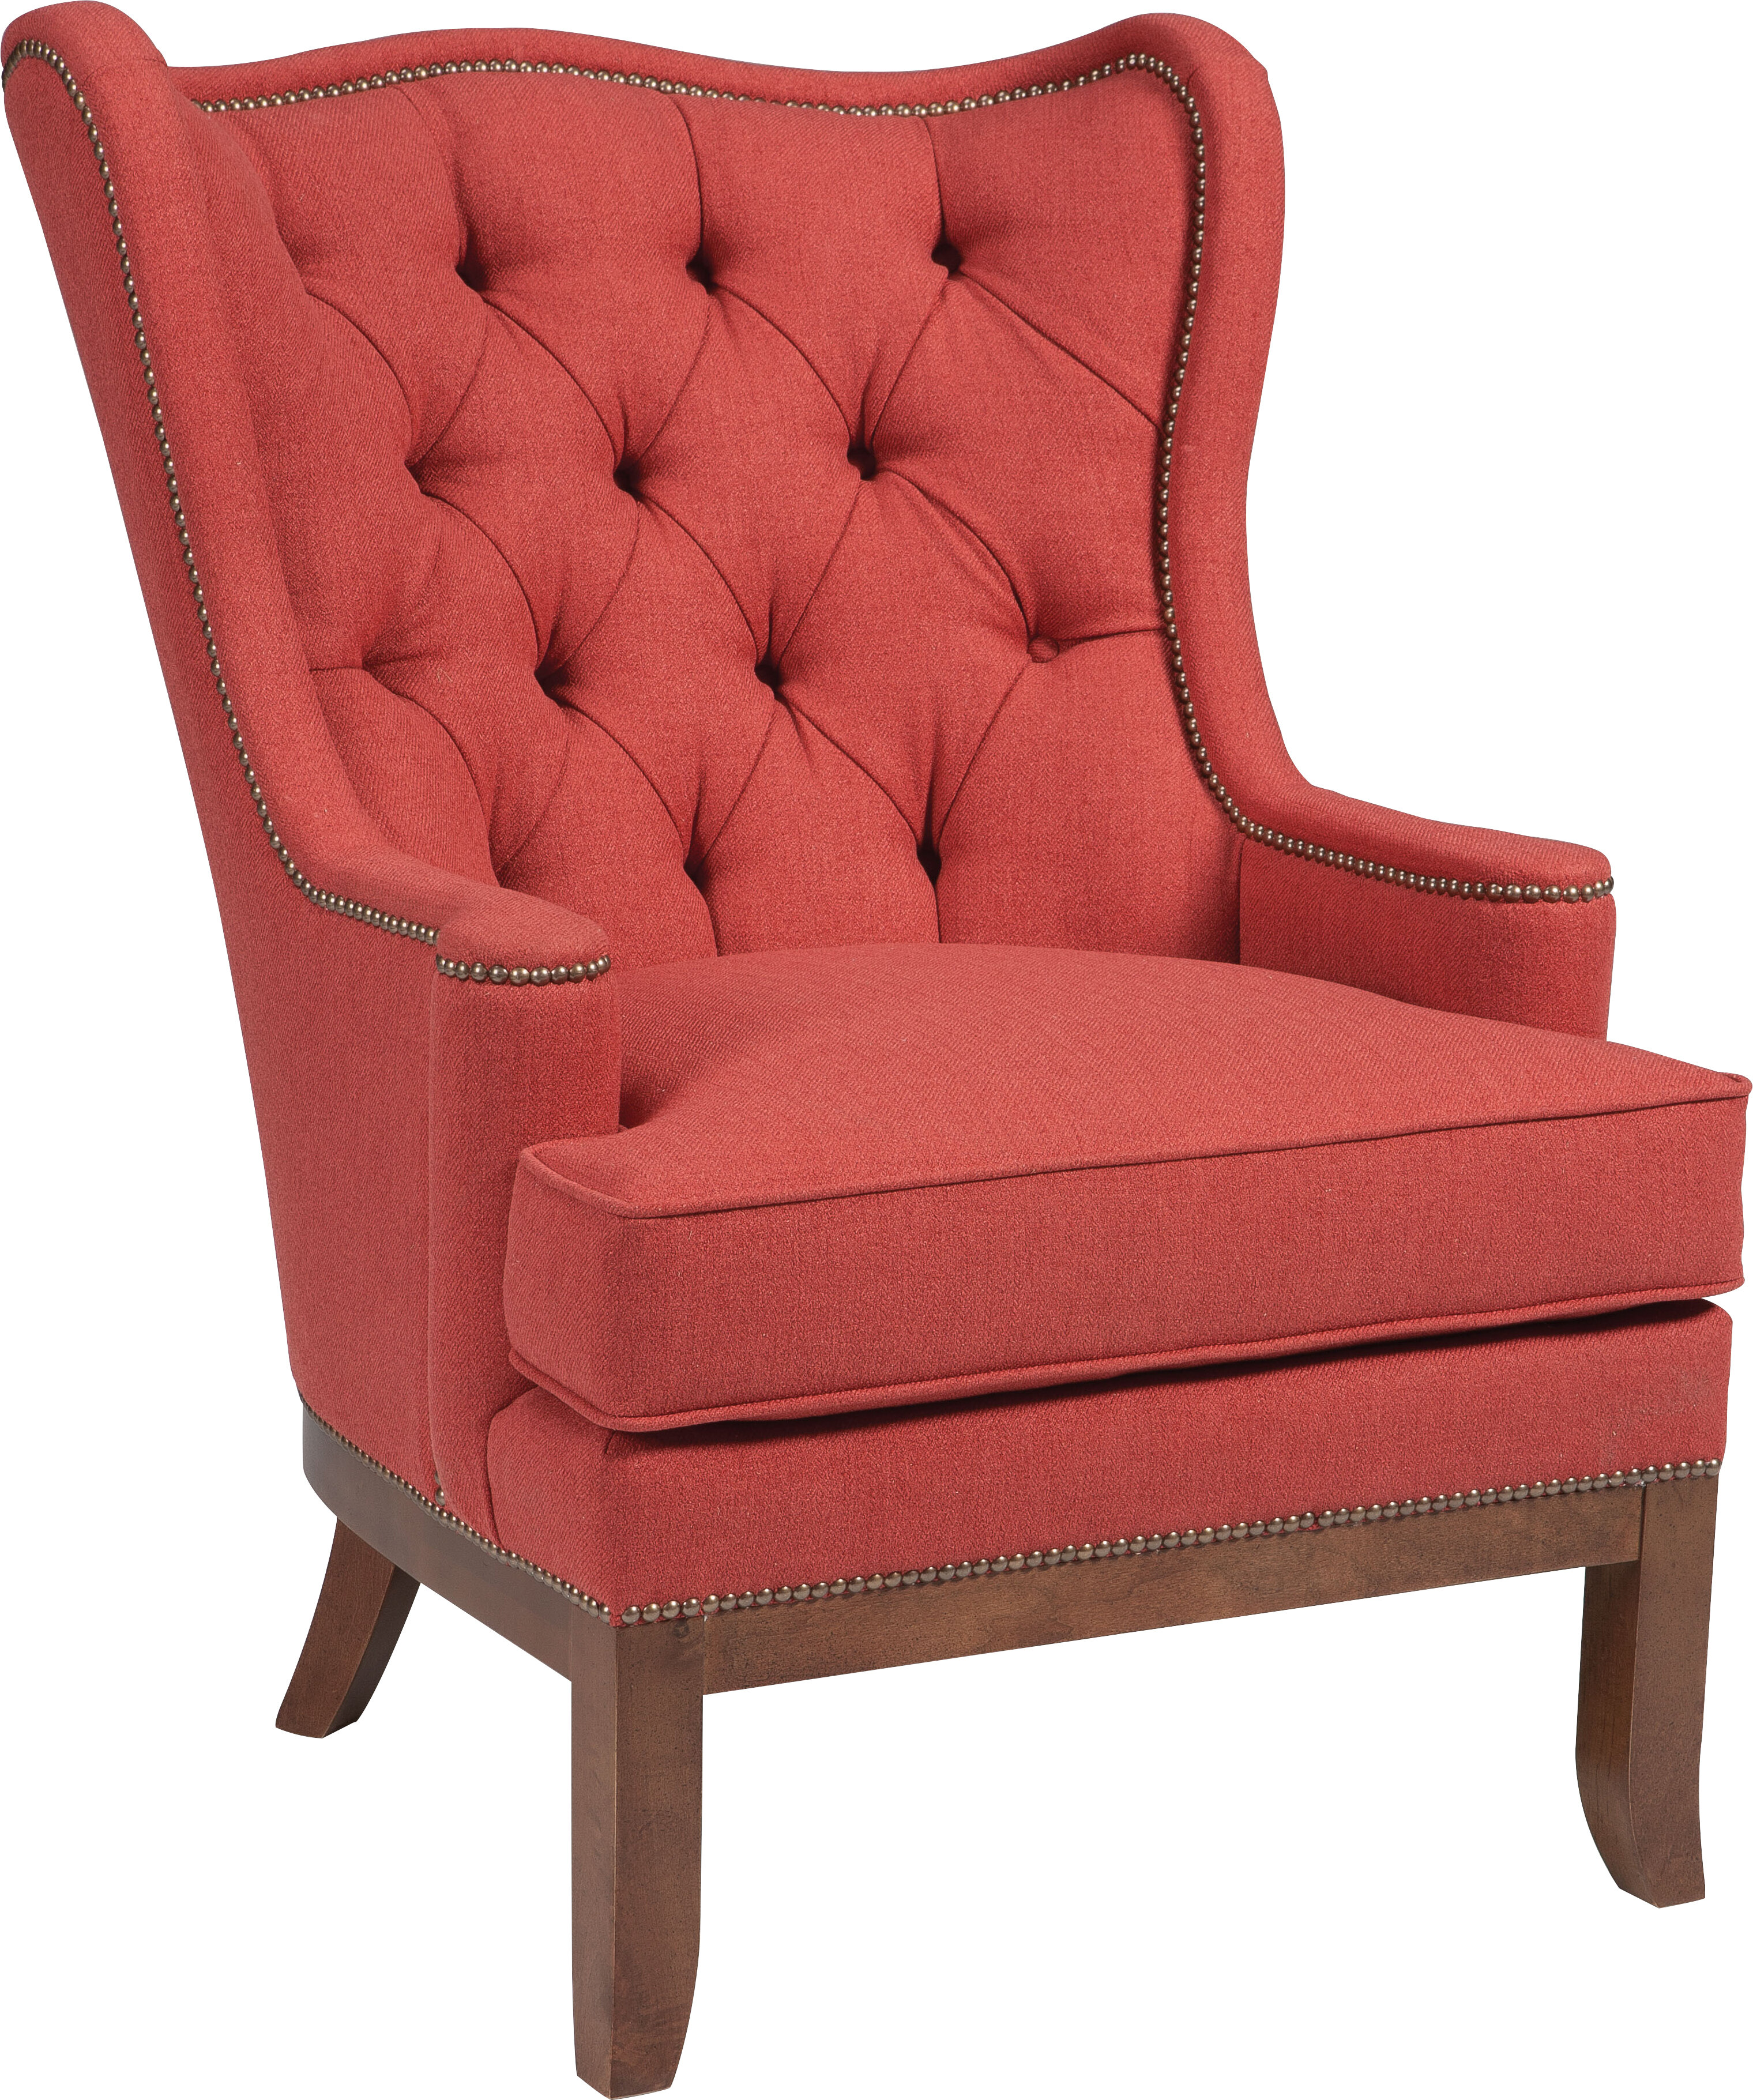 c46945ecb07 Fairfield Chair Celina Wingback Chair